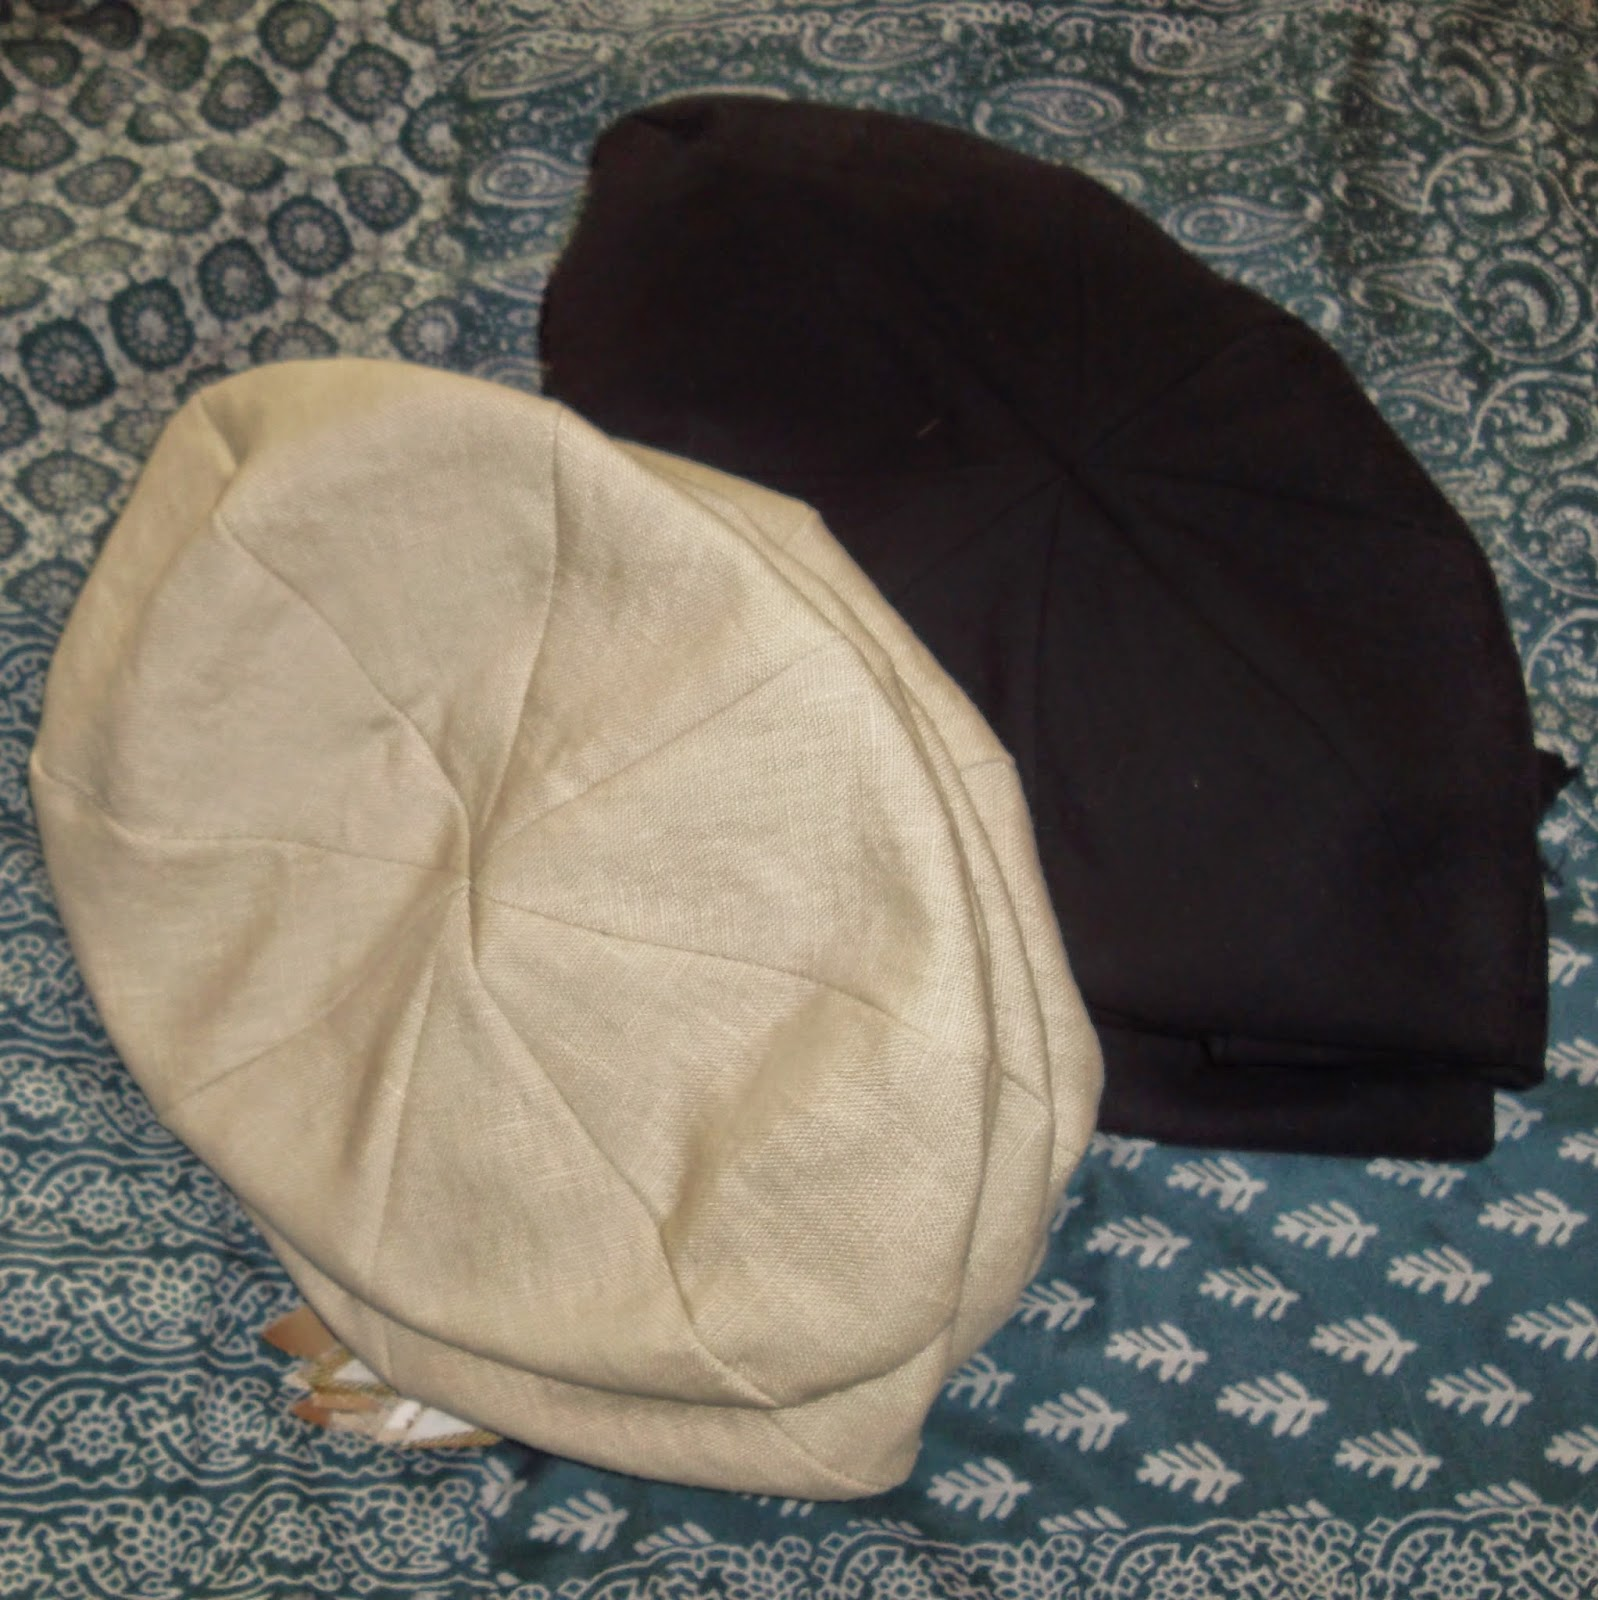 The crowns of newsboy-style, eight-paneled hats are stacked in piles of solid off-white and black hats.